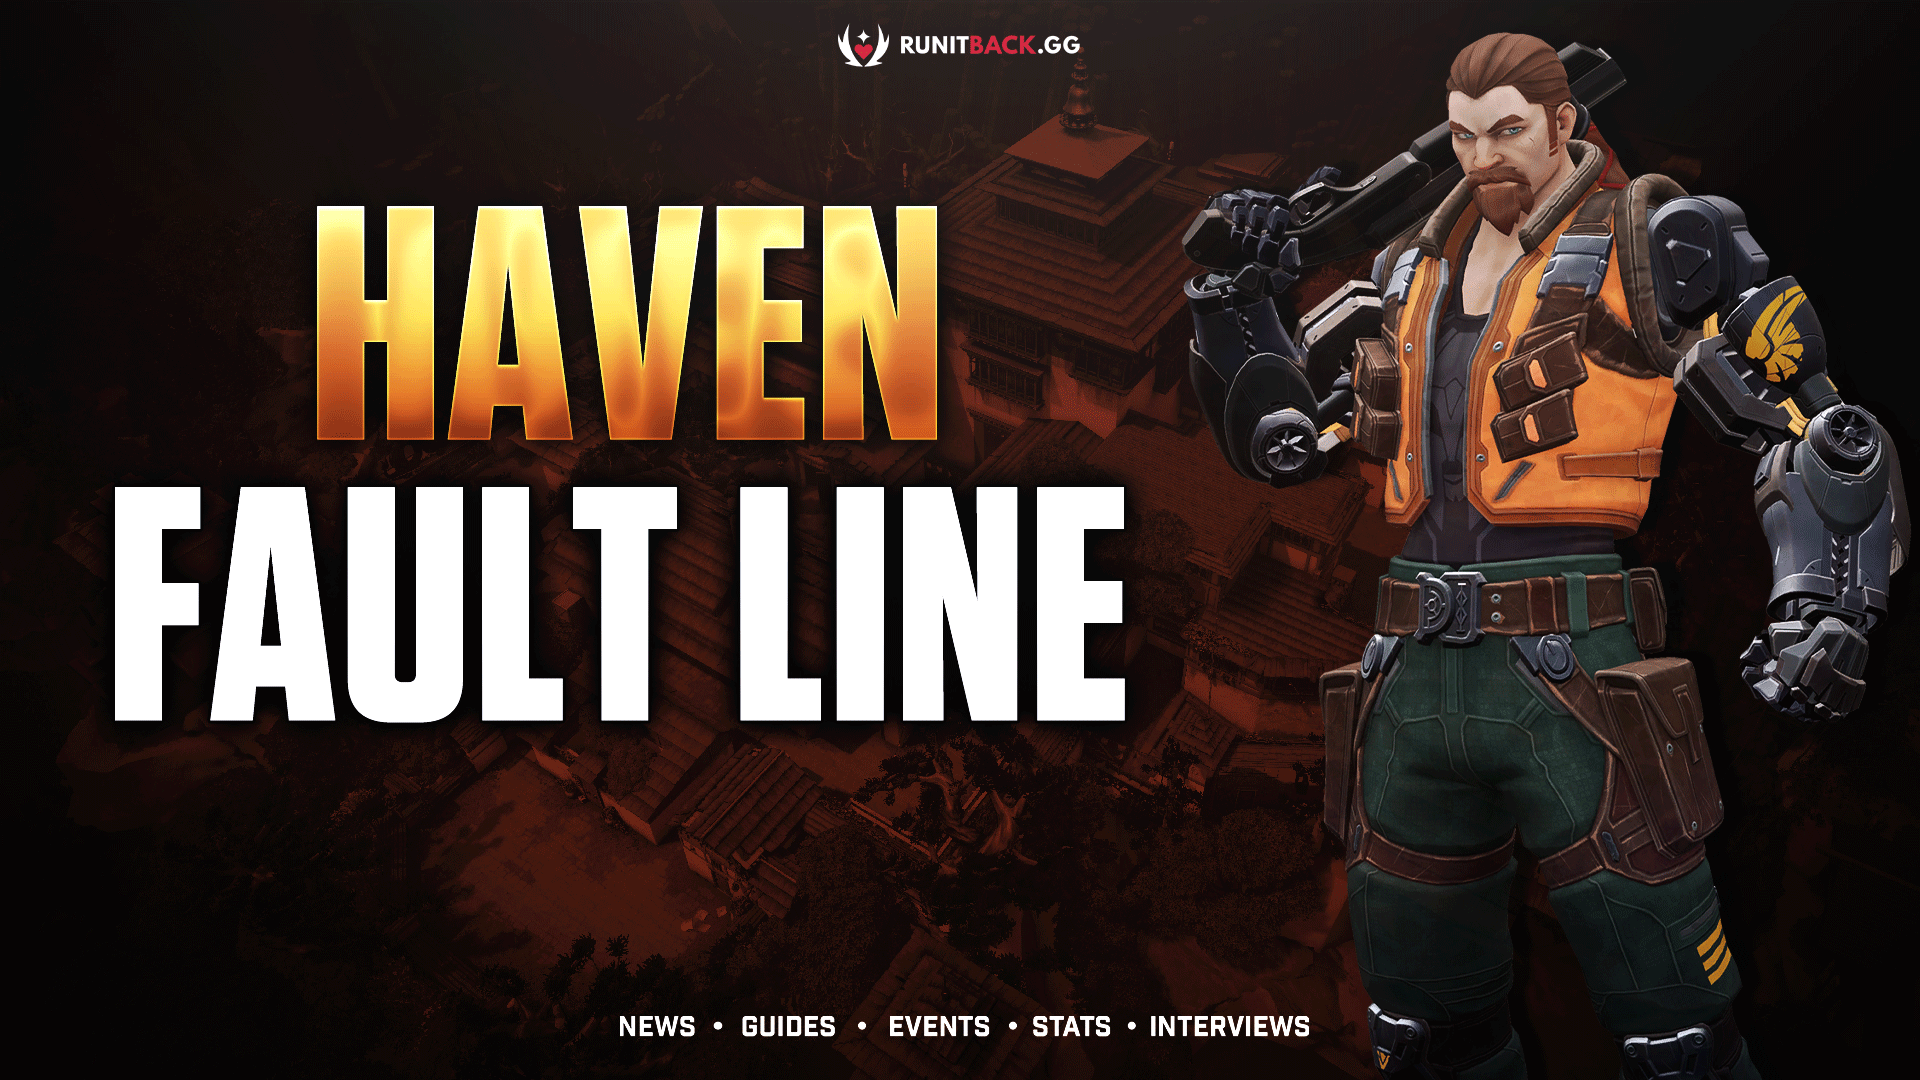 Breach Fault Line Guide: Haven